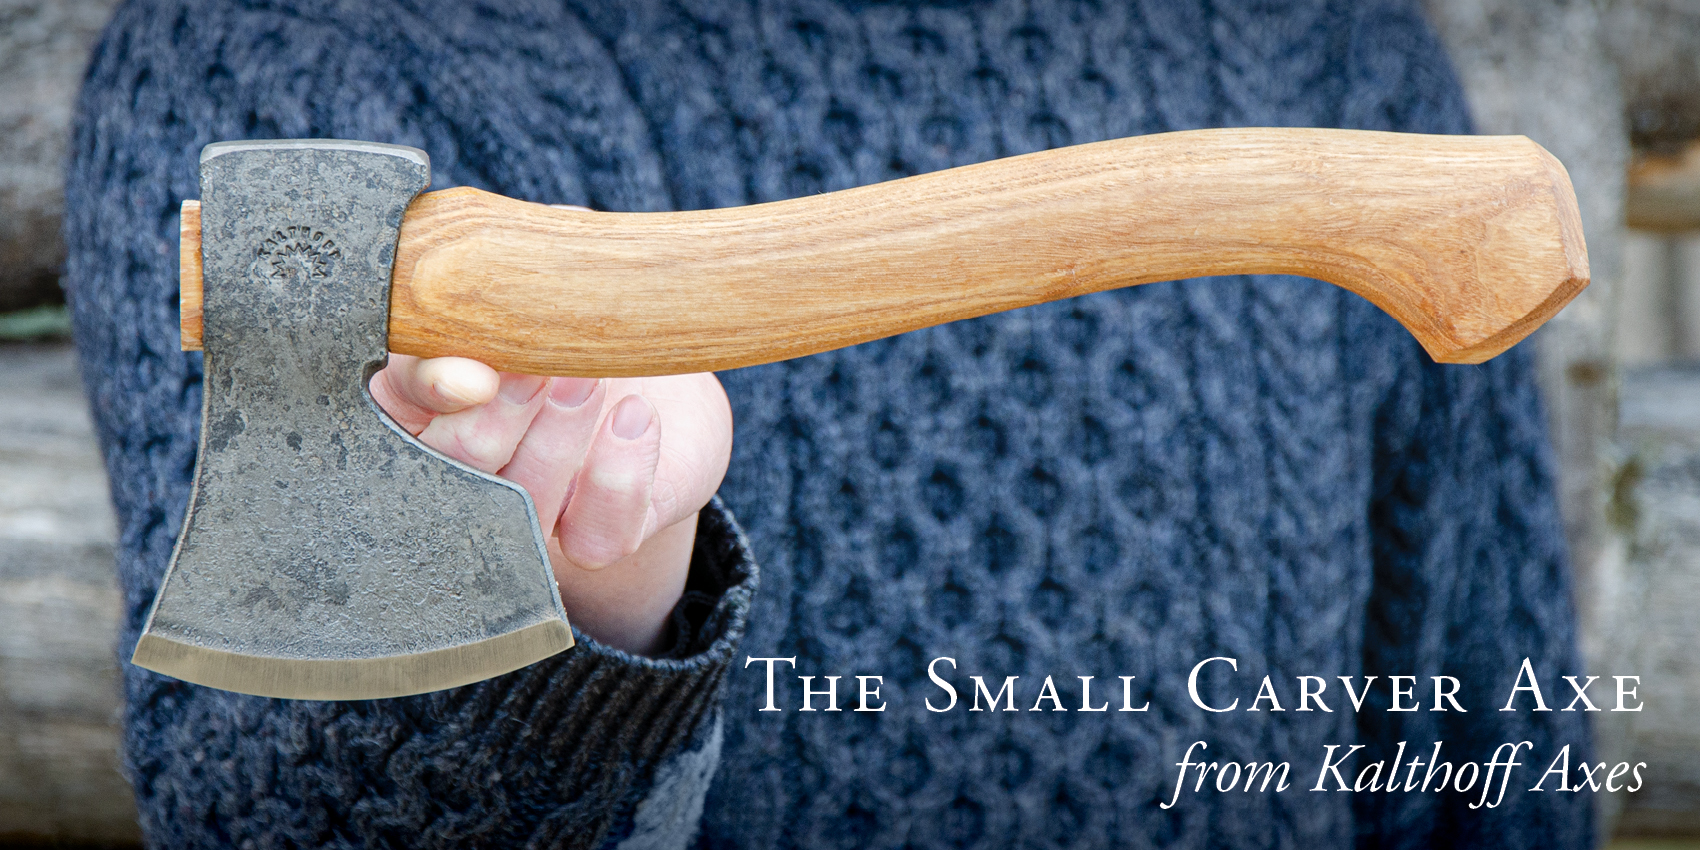 The Small Carver Axe from Kalthoff Axes